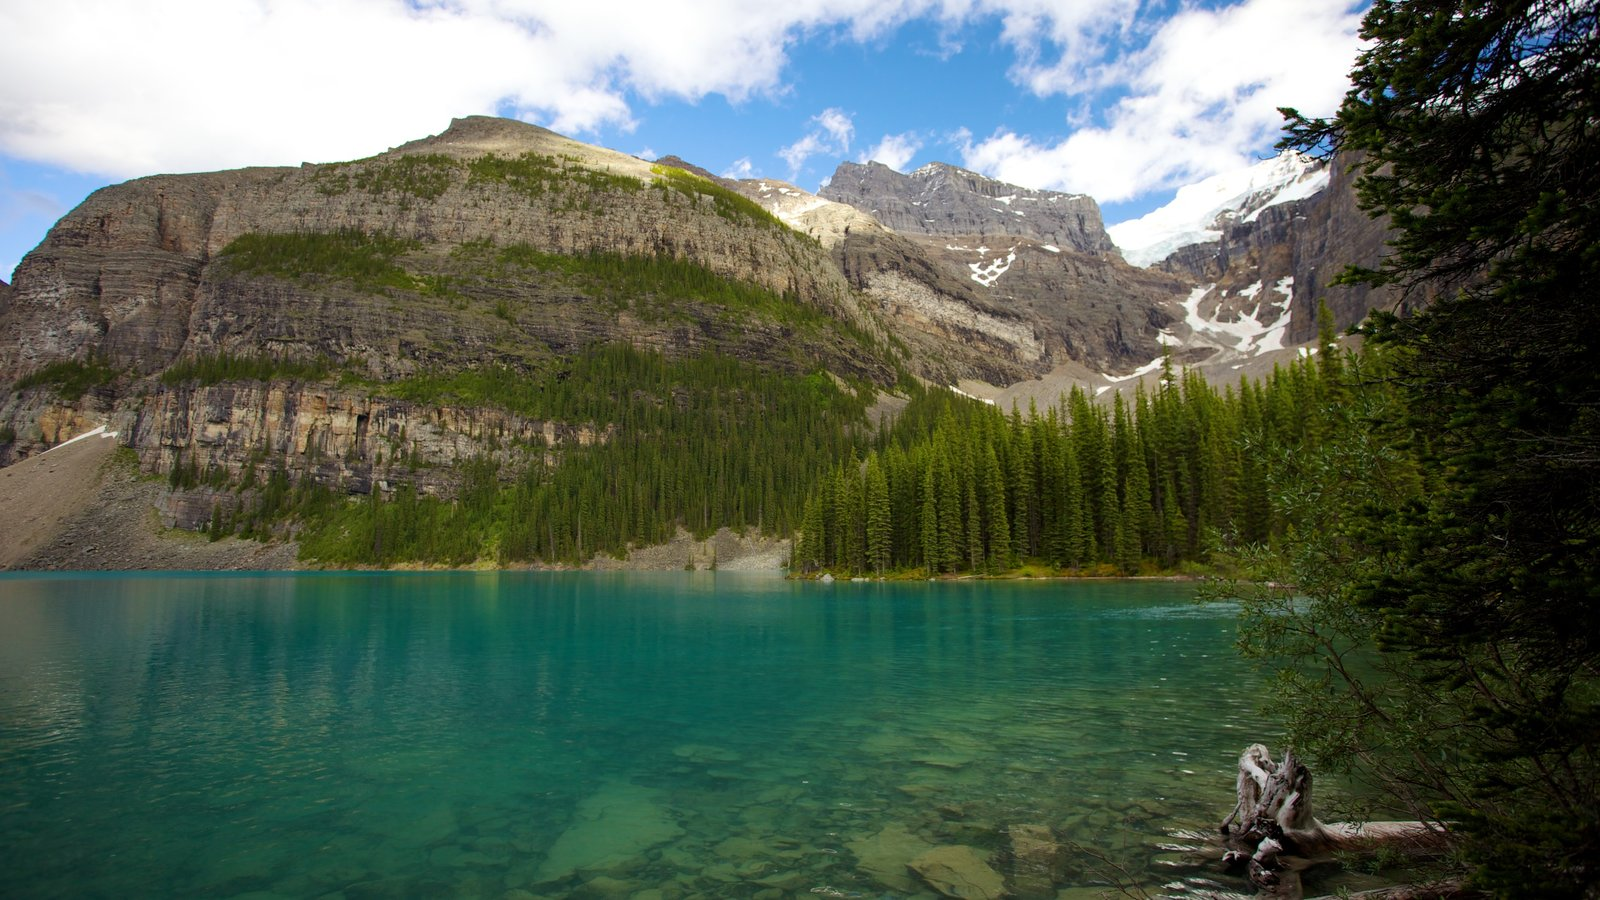 Moraine Lake featuring mountains, a lake or waterhole and landscape views